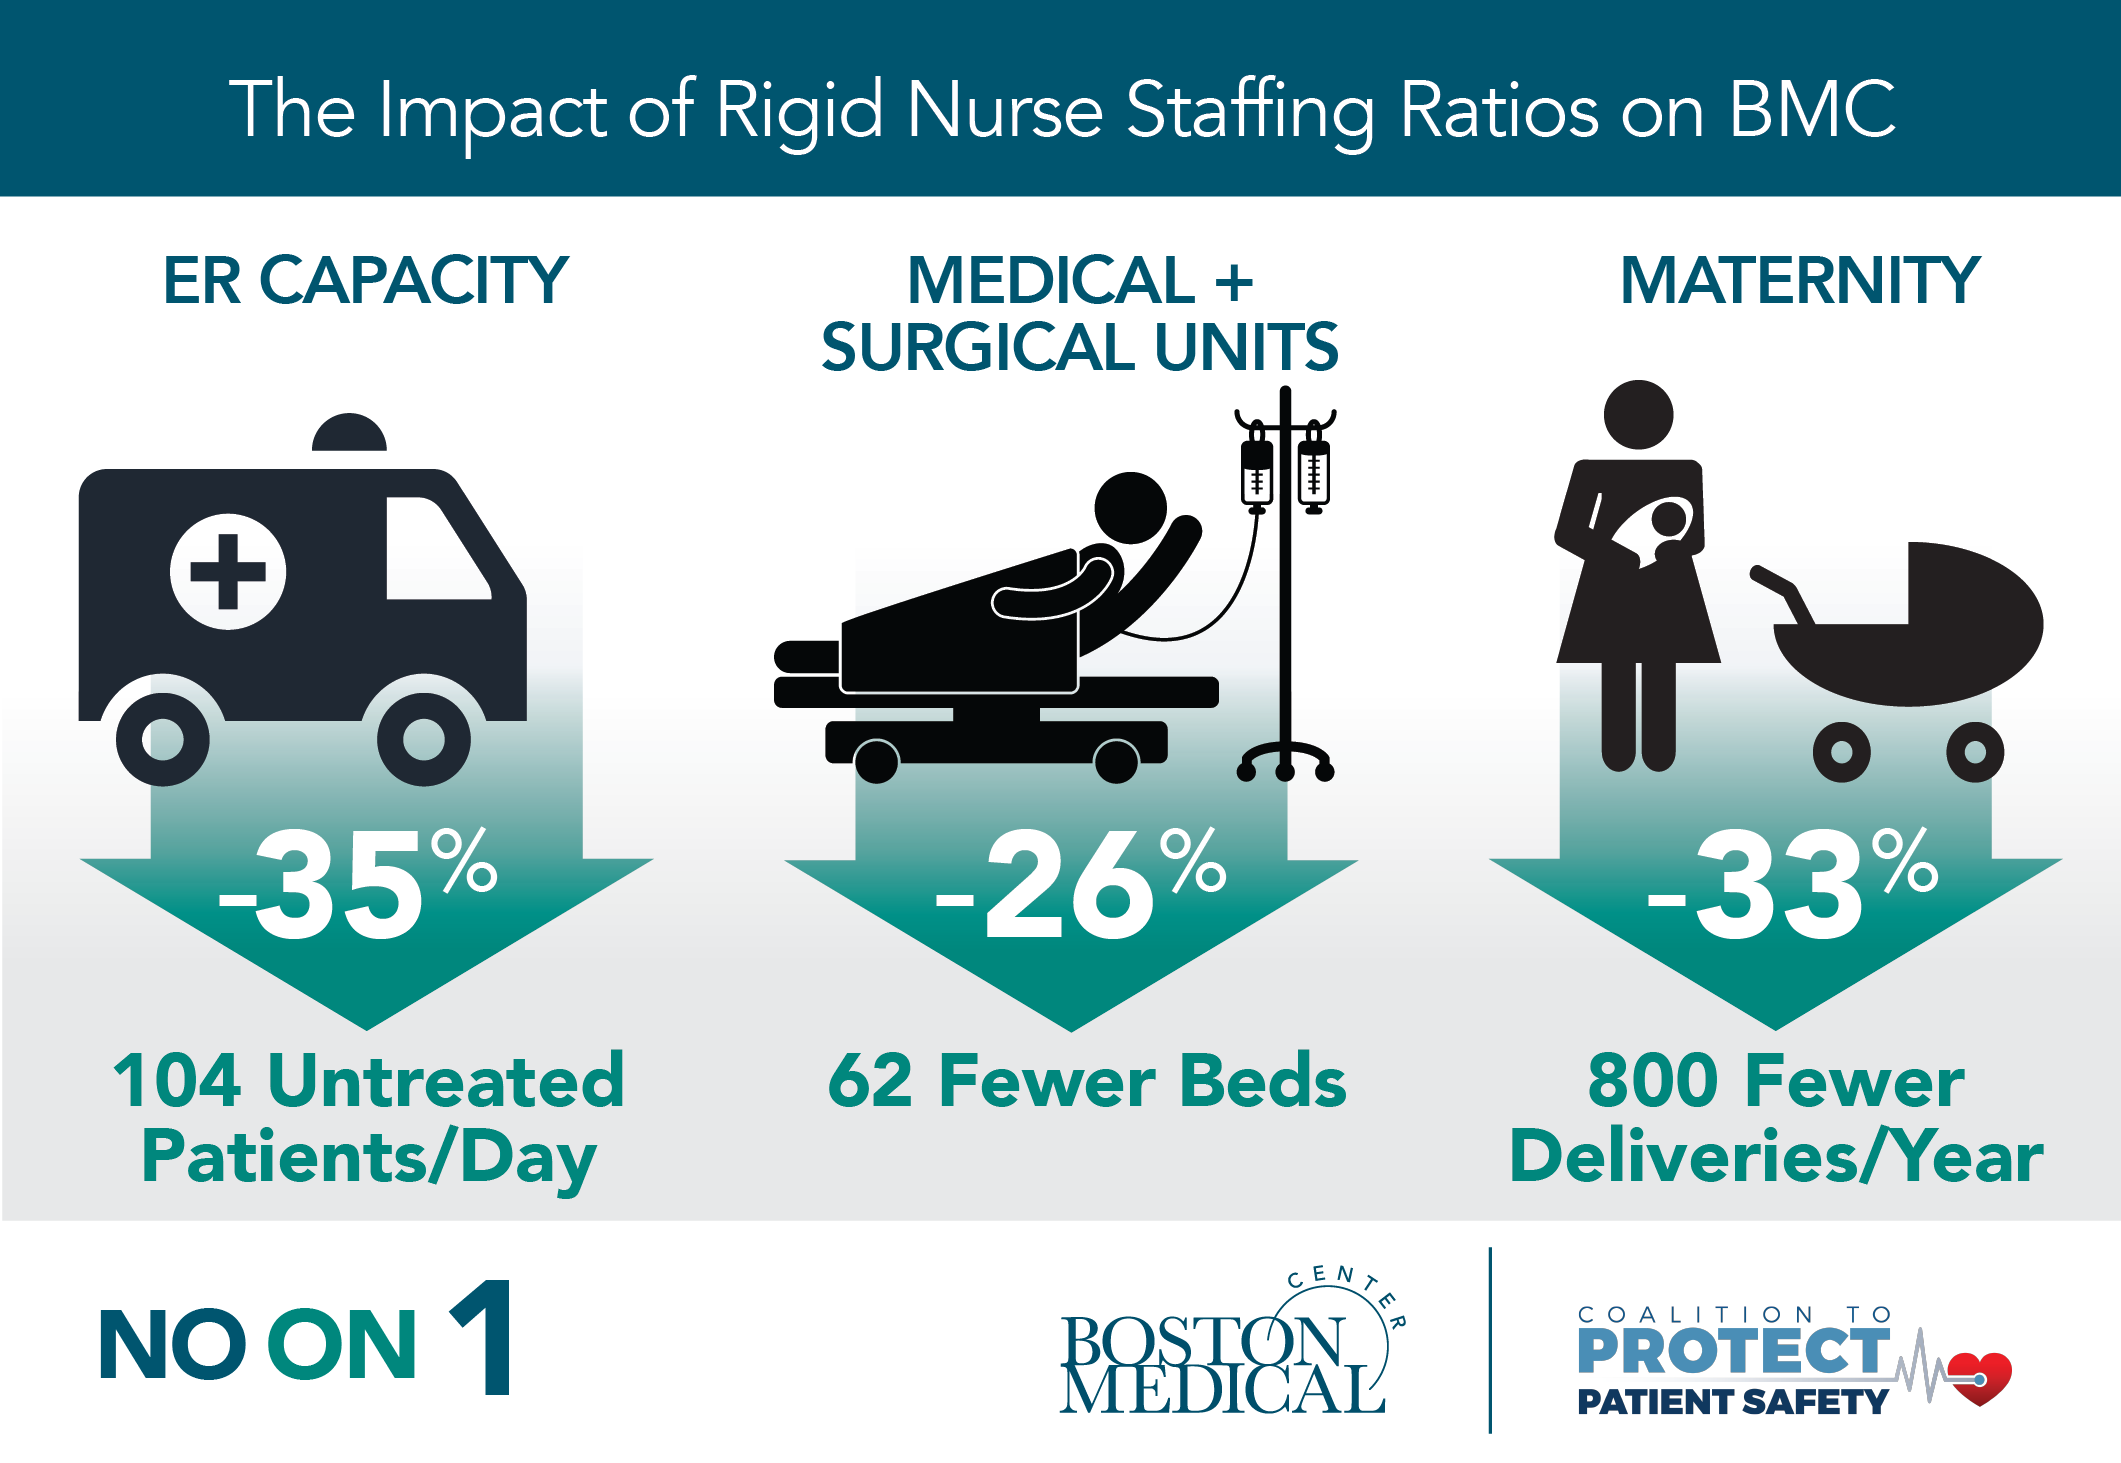 Infographic showing the impact of of rigid nurse staffing ratios on the ER, surgical units and maternity department.